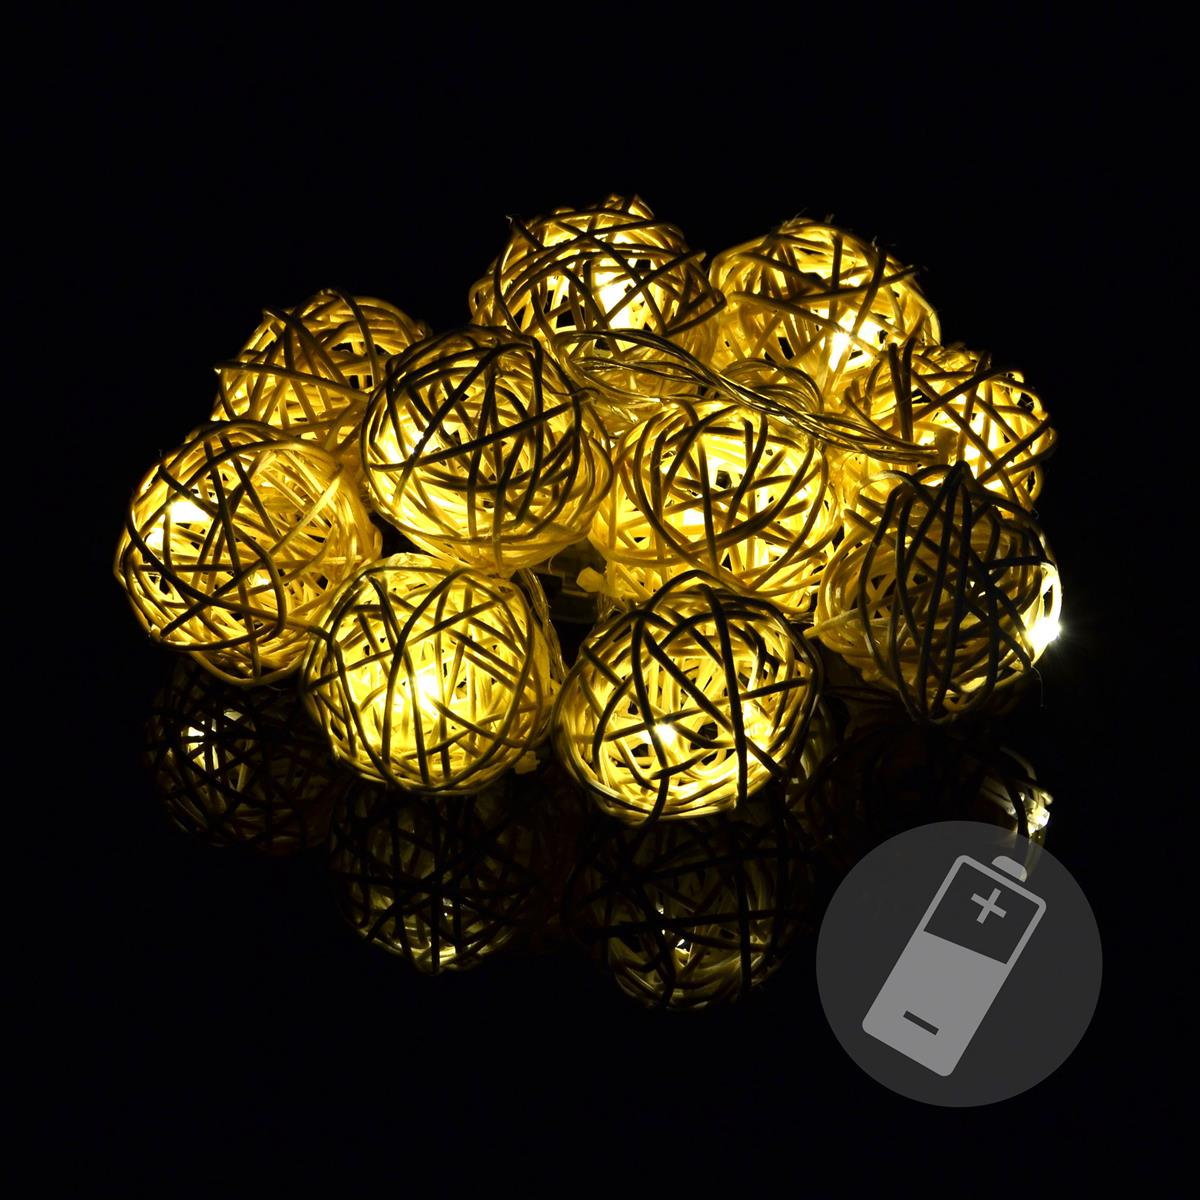 2er Set 10 LED Lichterkette Ball in Rattanoptik Lichterkette warmweiß Batterie